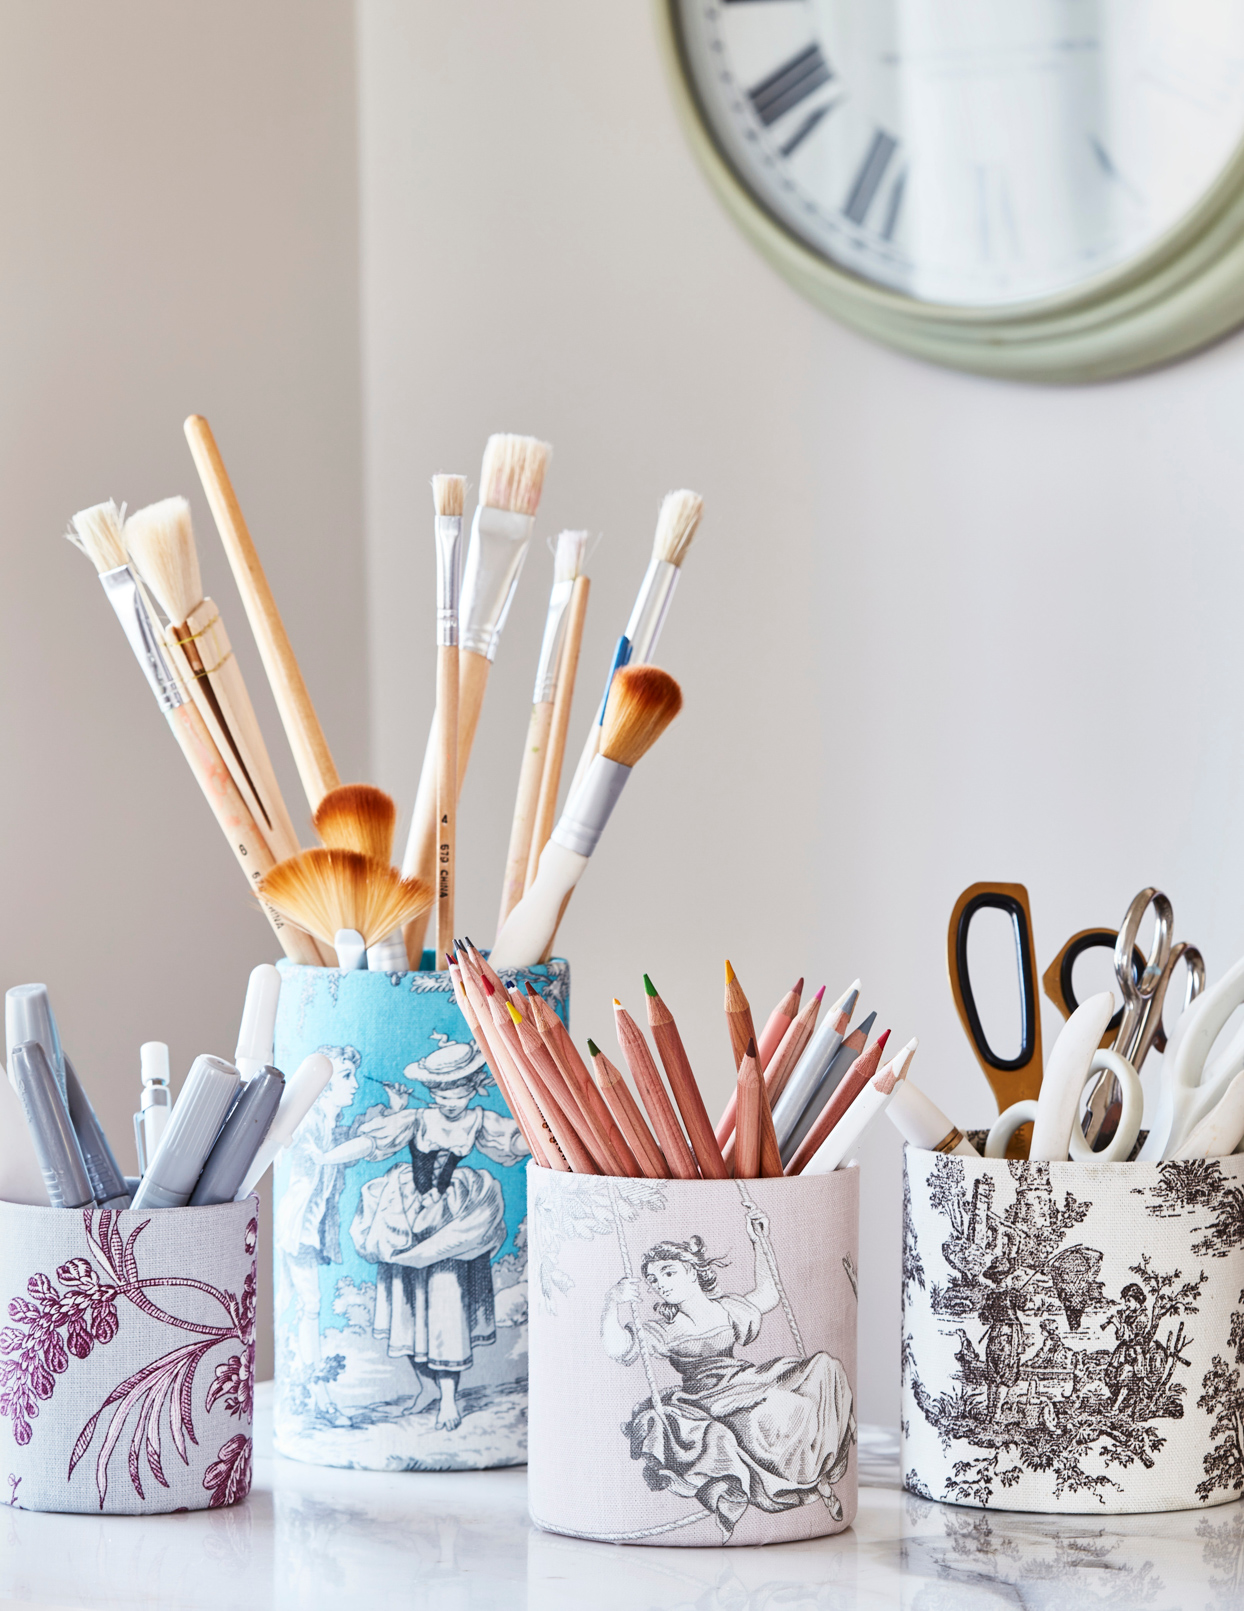 French-toile fabric covered containers